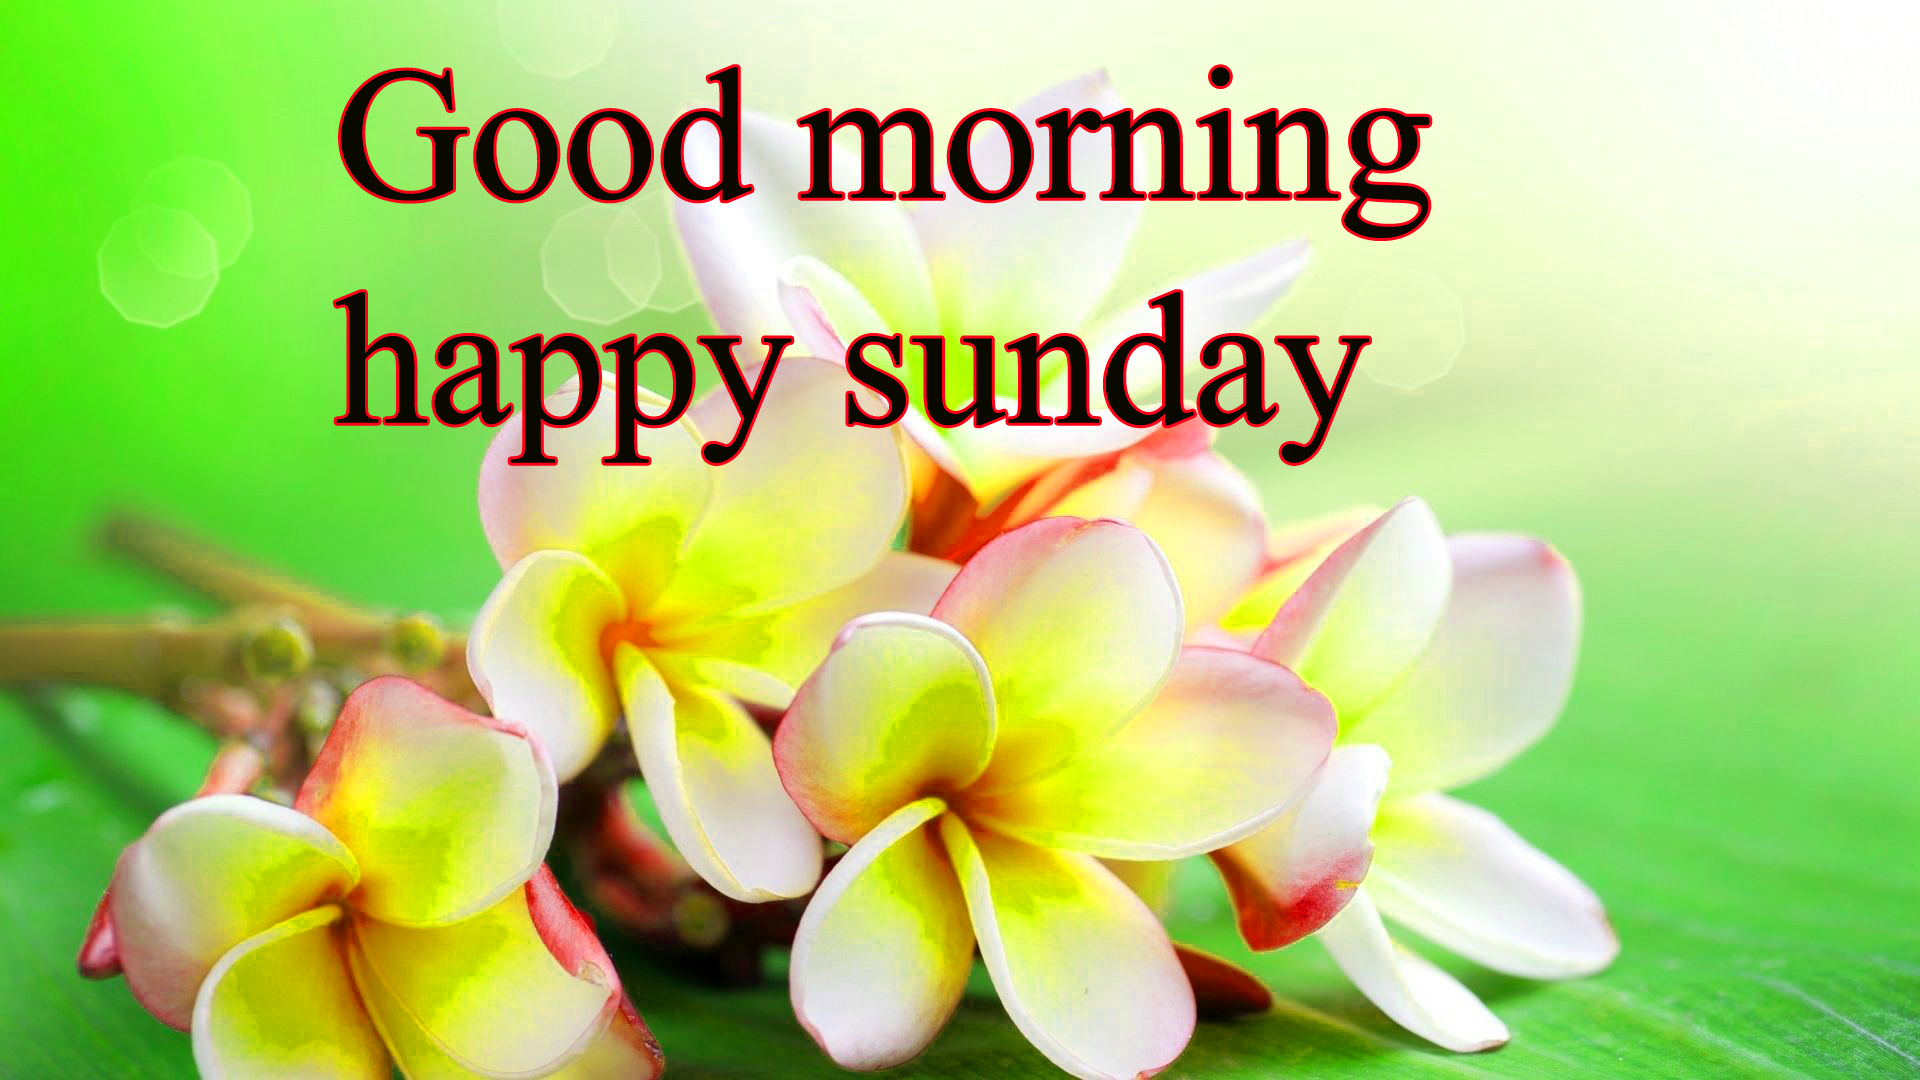 Sunday Good Morning Images Pics Wallpaper Photo Free HD Download